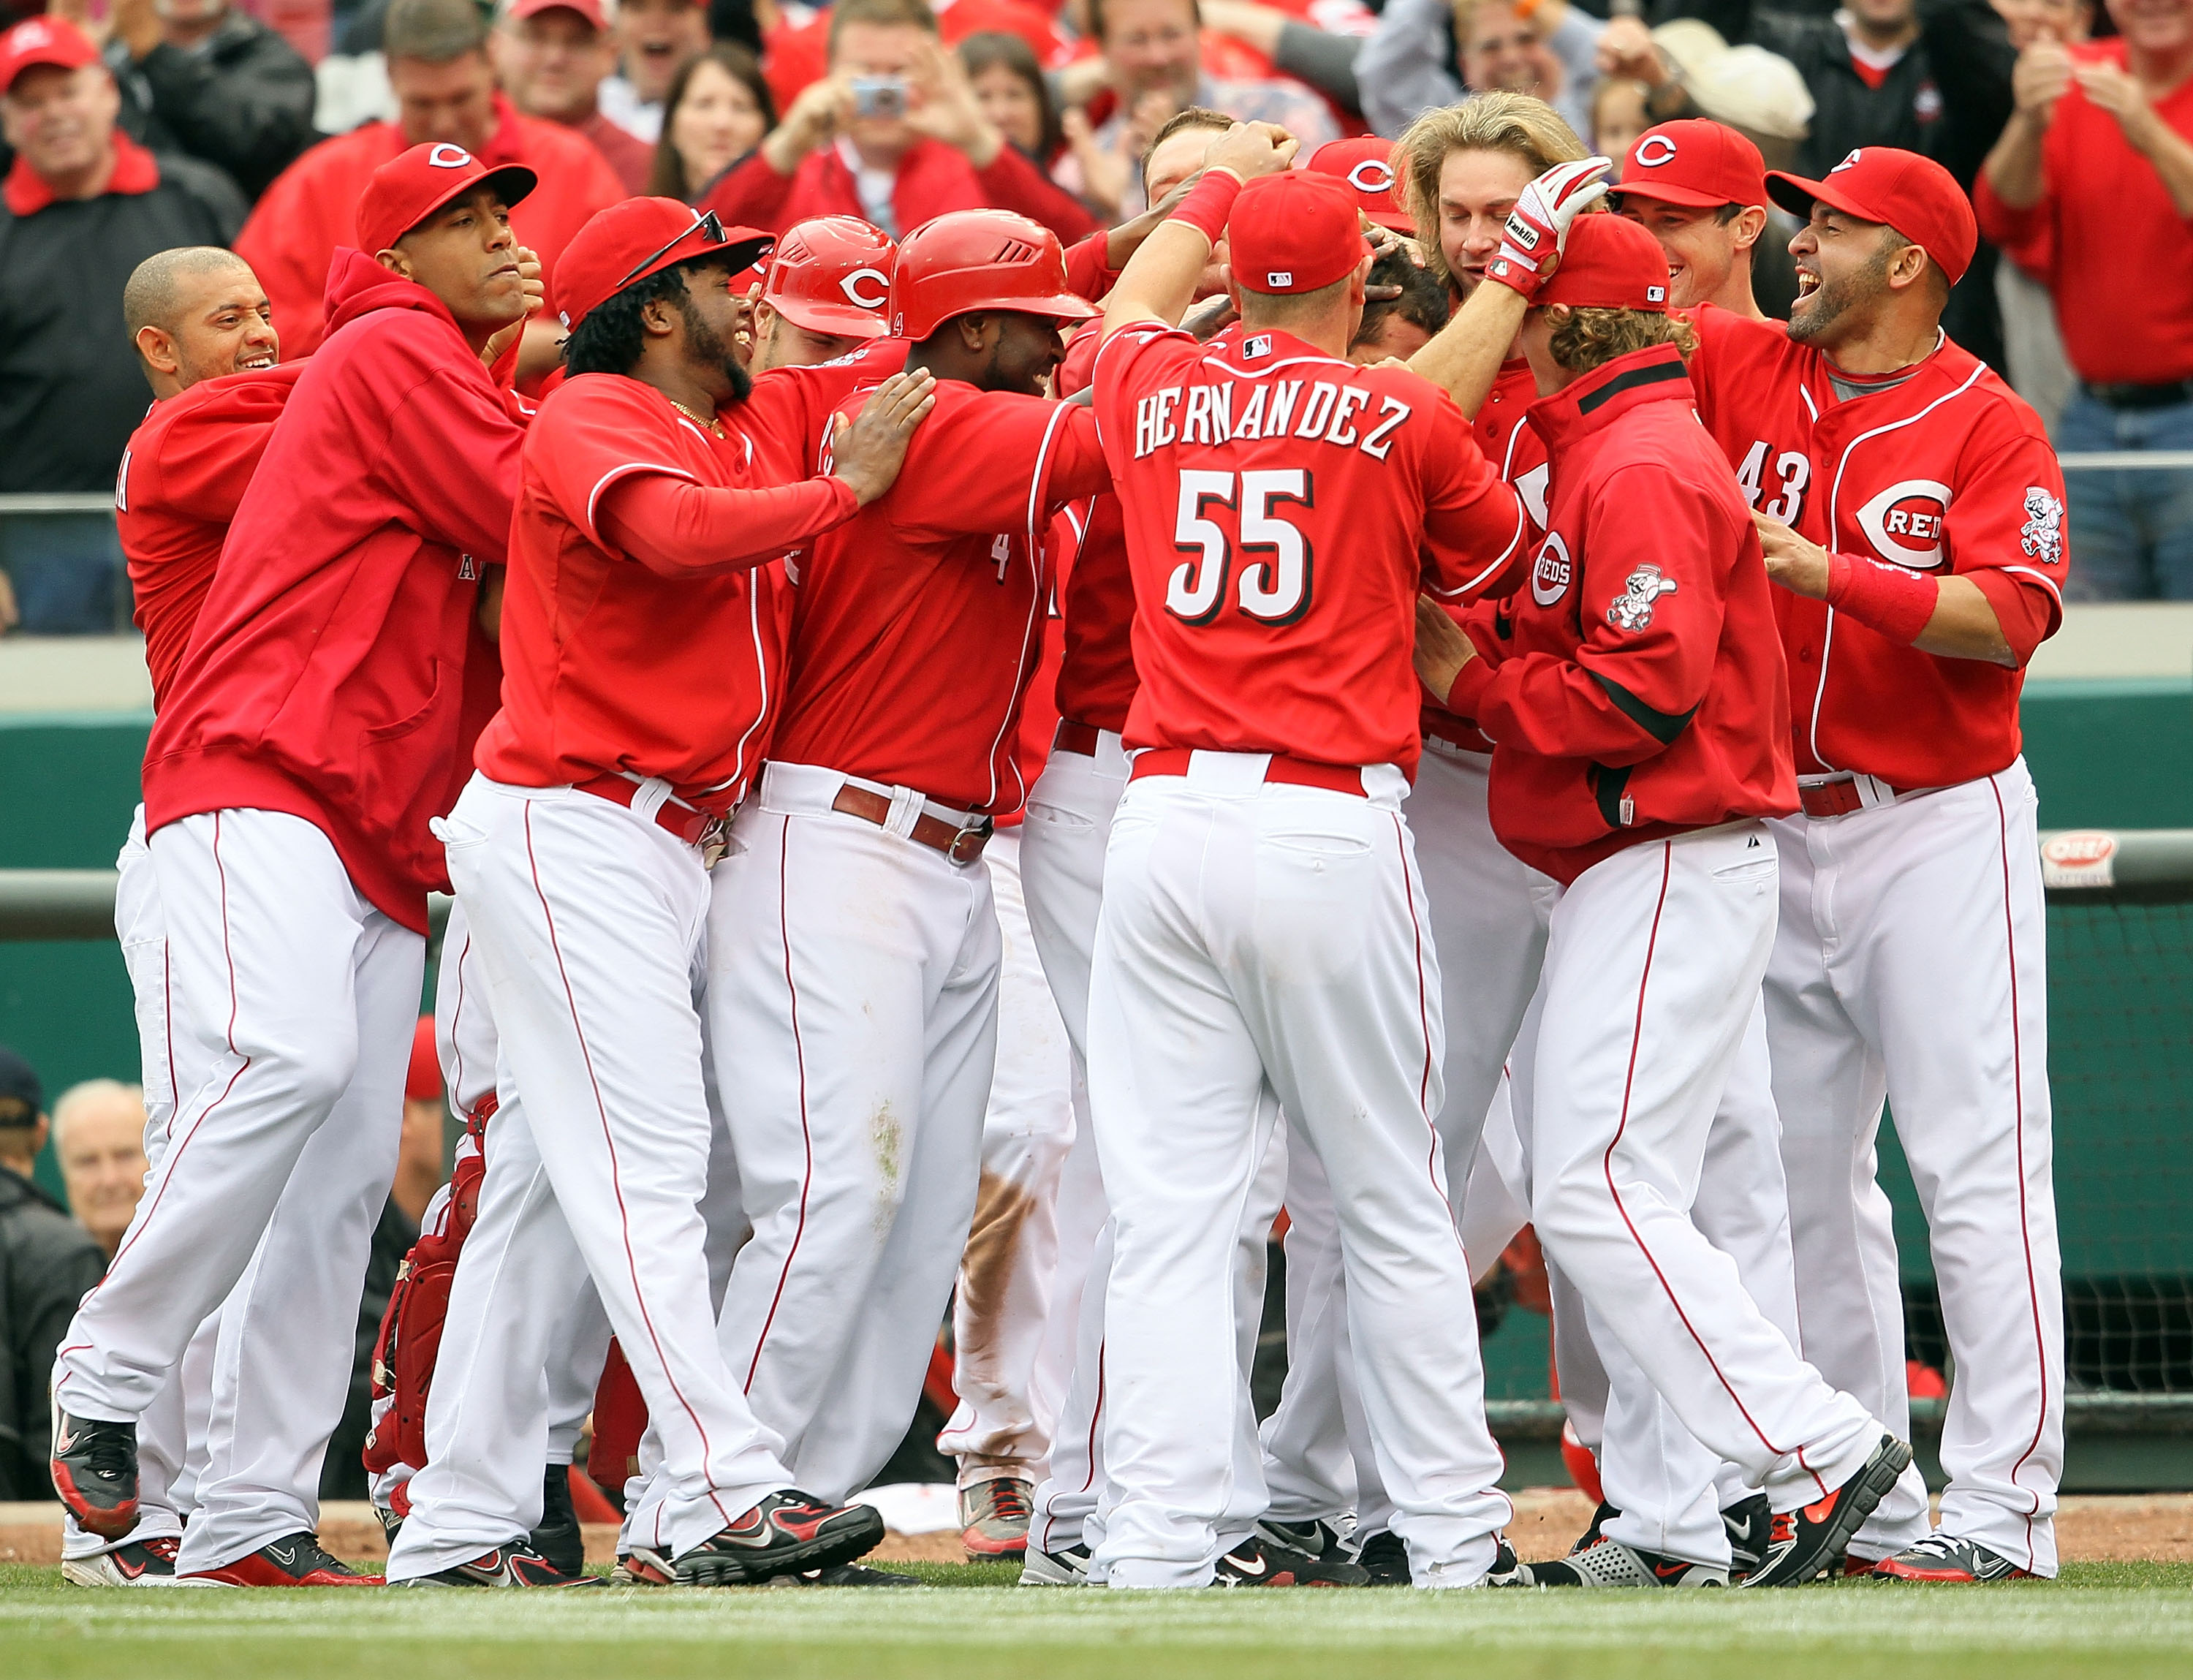 The Cincinnati Reds had a storybook 2010.  Is the book closed, or does the story continue in 2011?